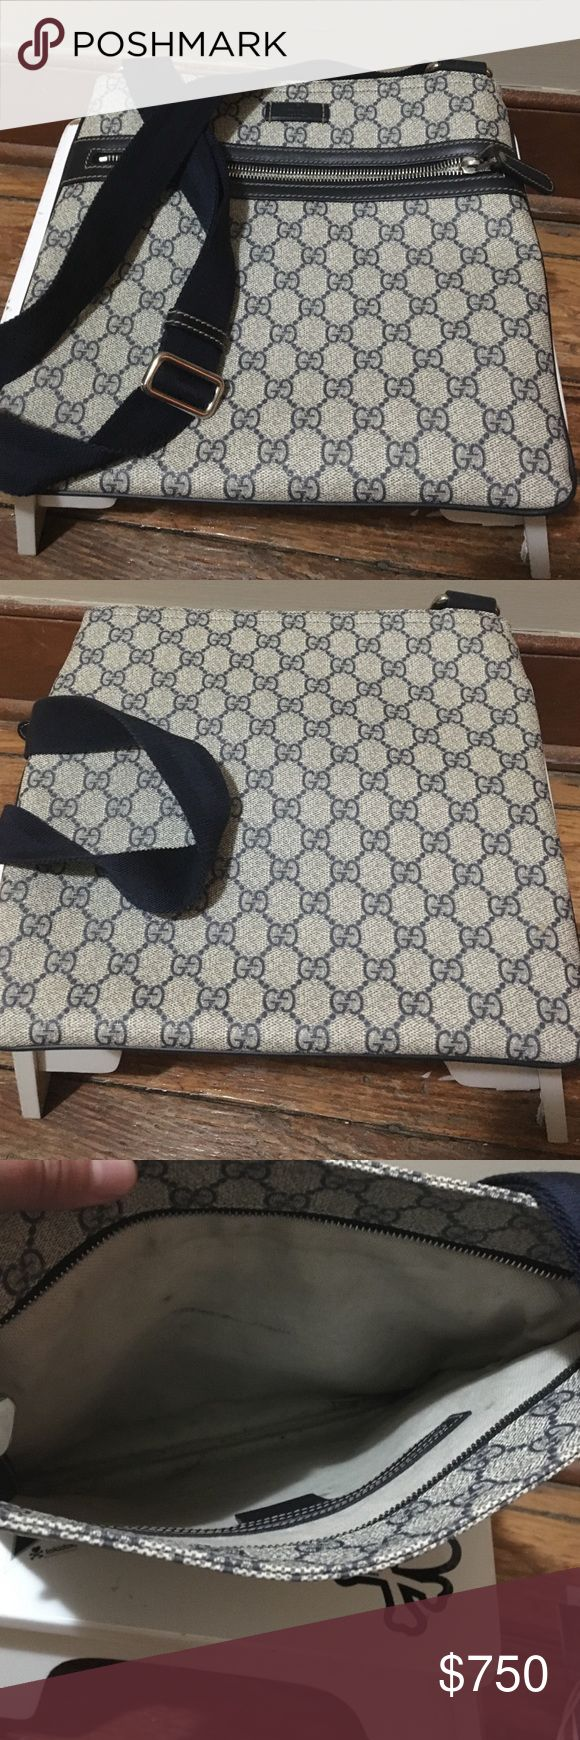 AUTHENTIC Limited crossbody Gucci messenger bag I purchased this at Saks fifth Avenue this was part of their coated canvas collection it's technically a men's messenger bag it does come with the dust bag. I believe they keep their records at Saks so you can just give them my information and I could pull it up if you really want the purchasing info Gucci Bags Crossbody Bags